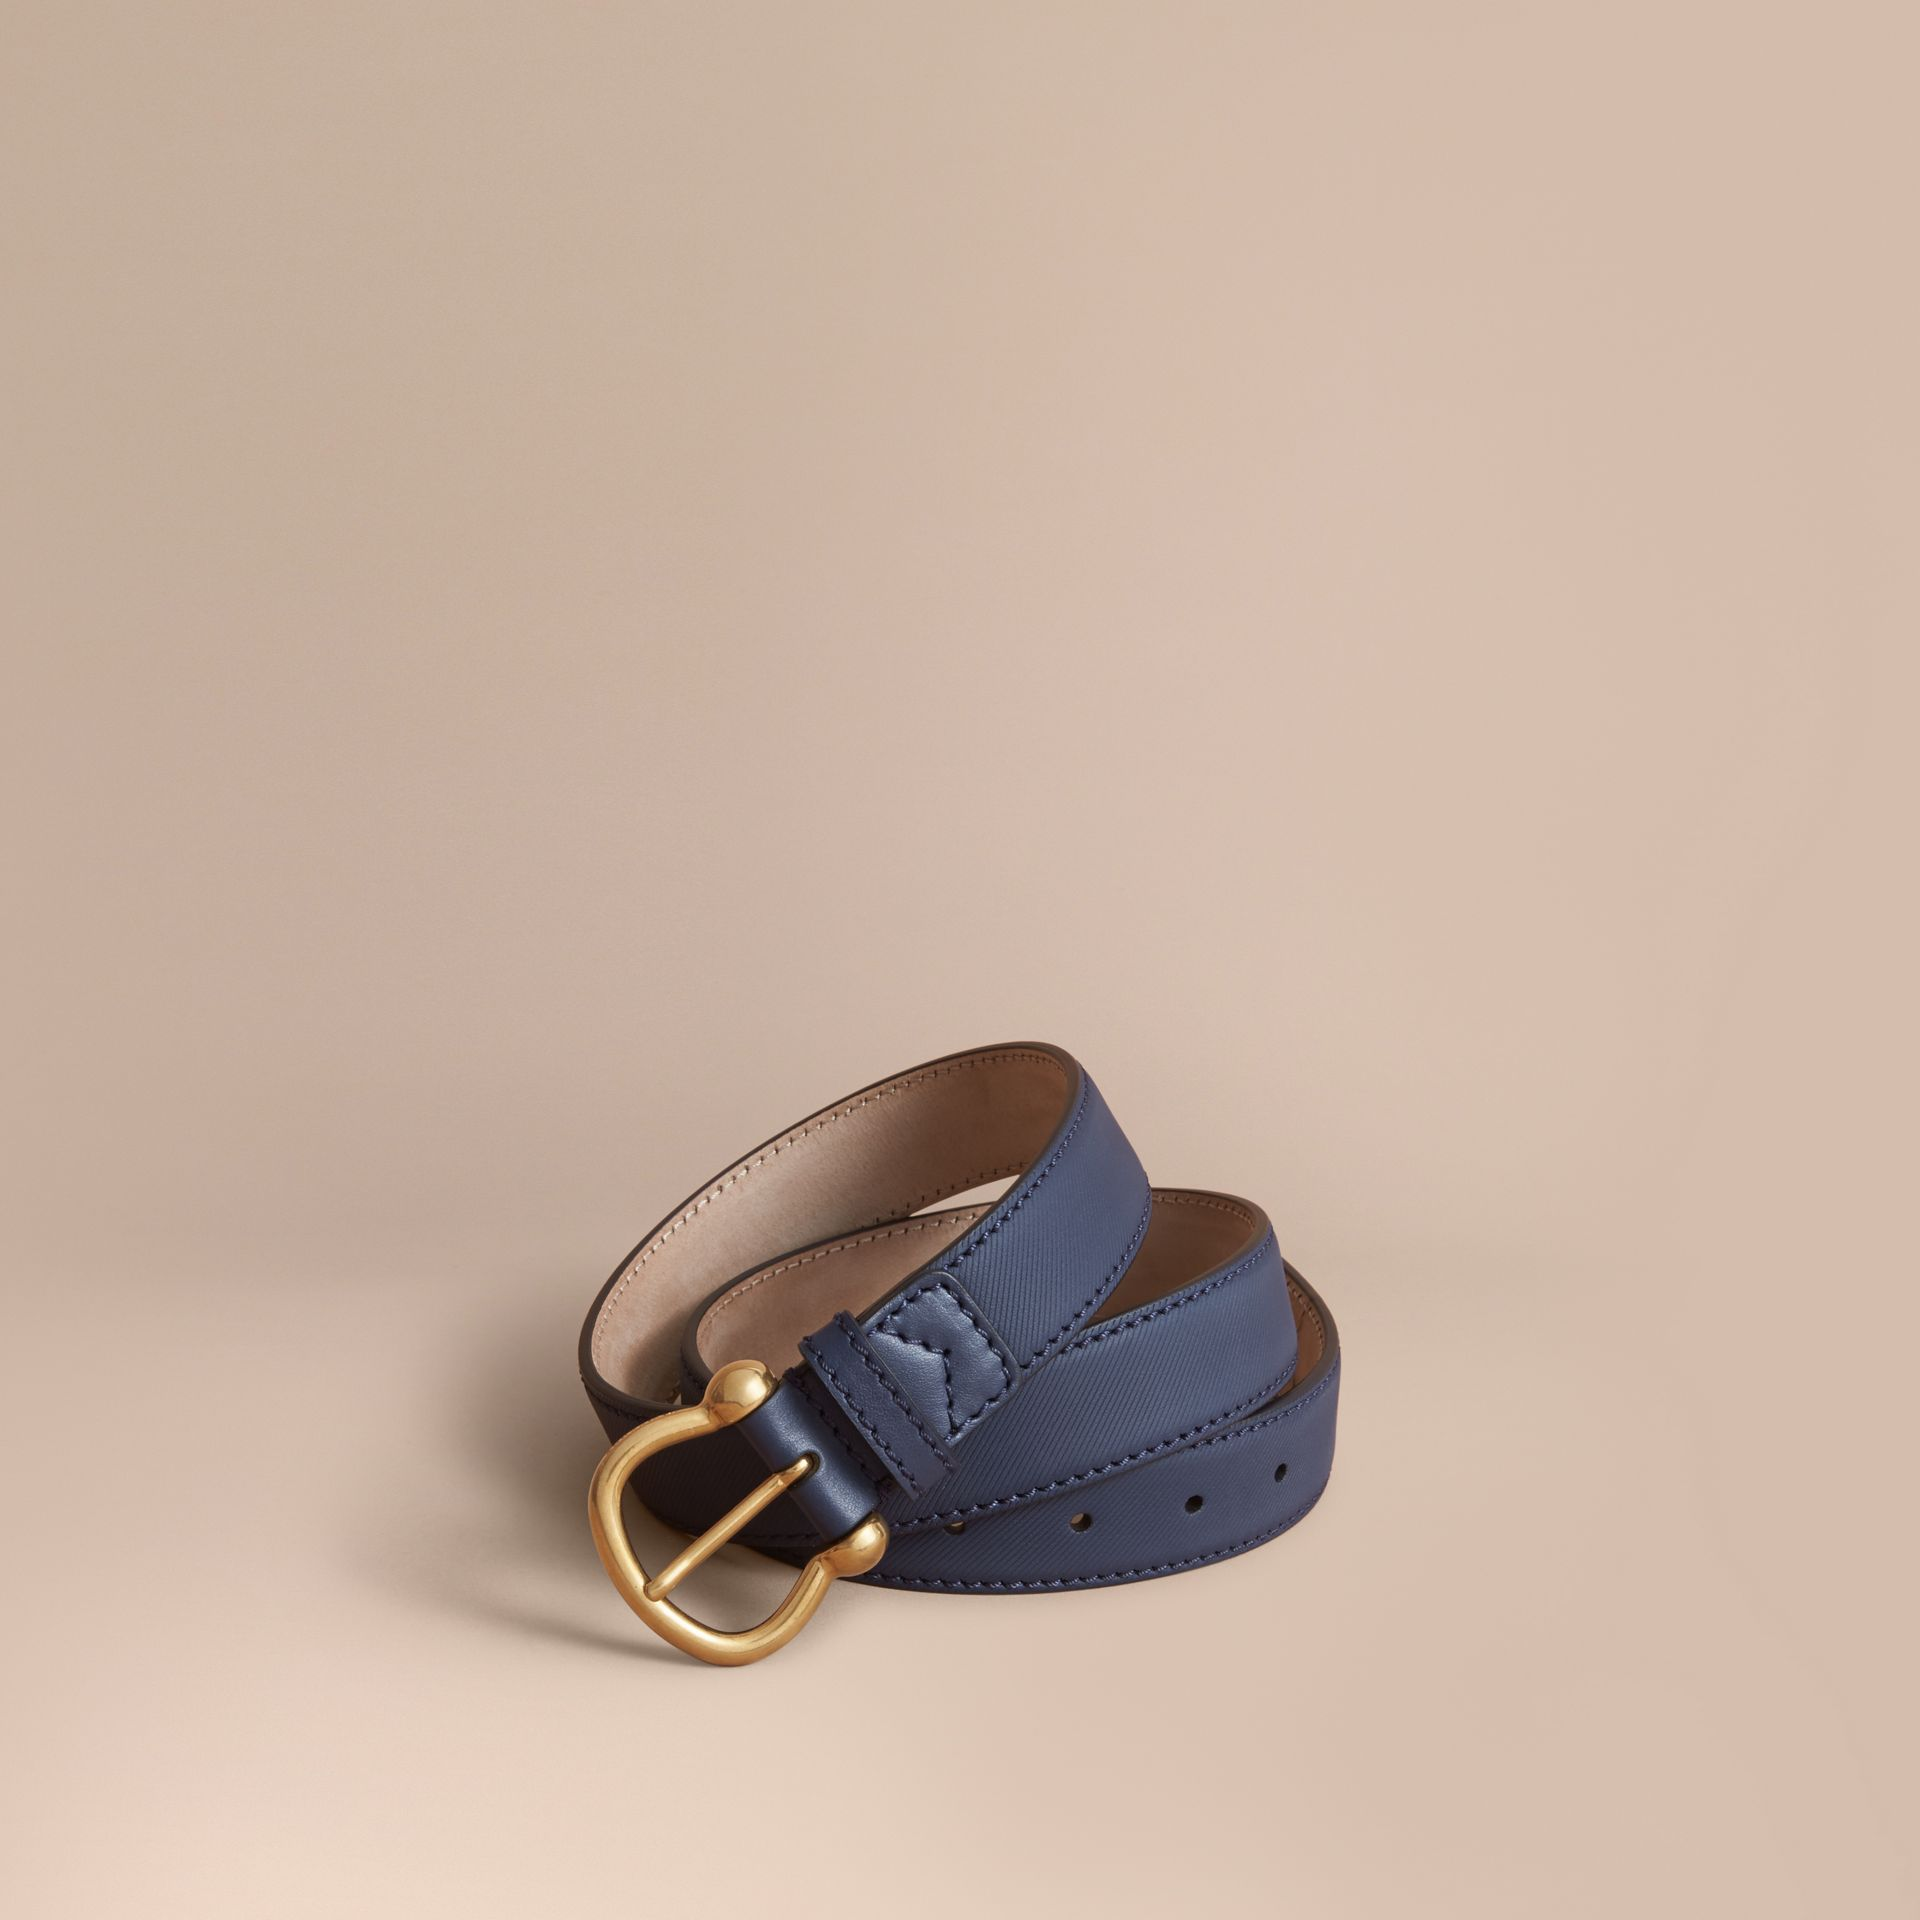 Trench Leather Belt in Ink Blue - Women | Burberry Singapore - gallery image 1